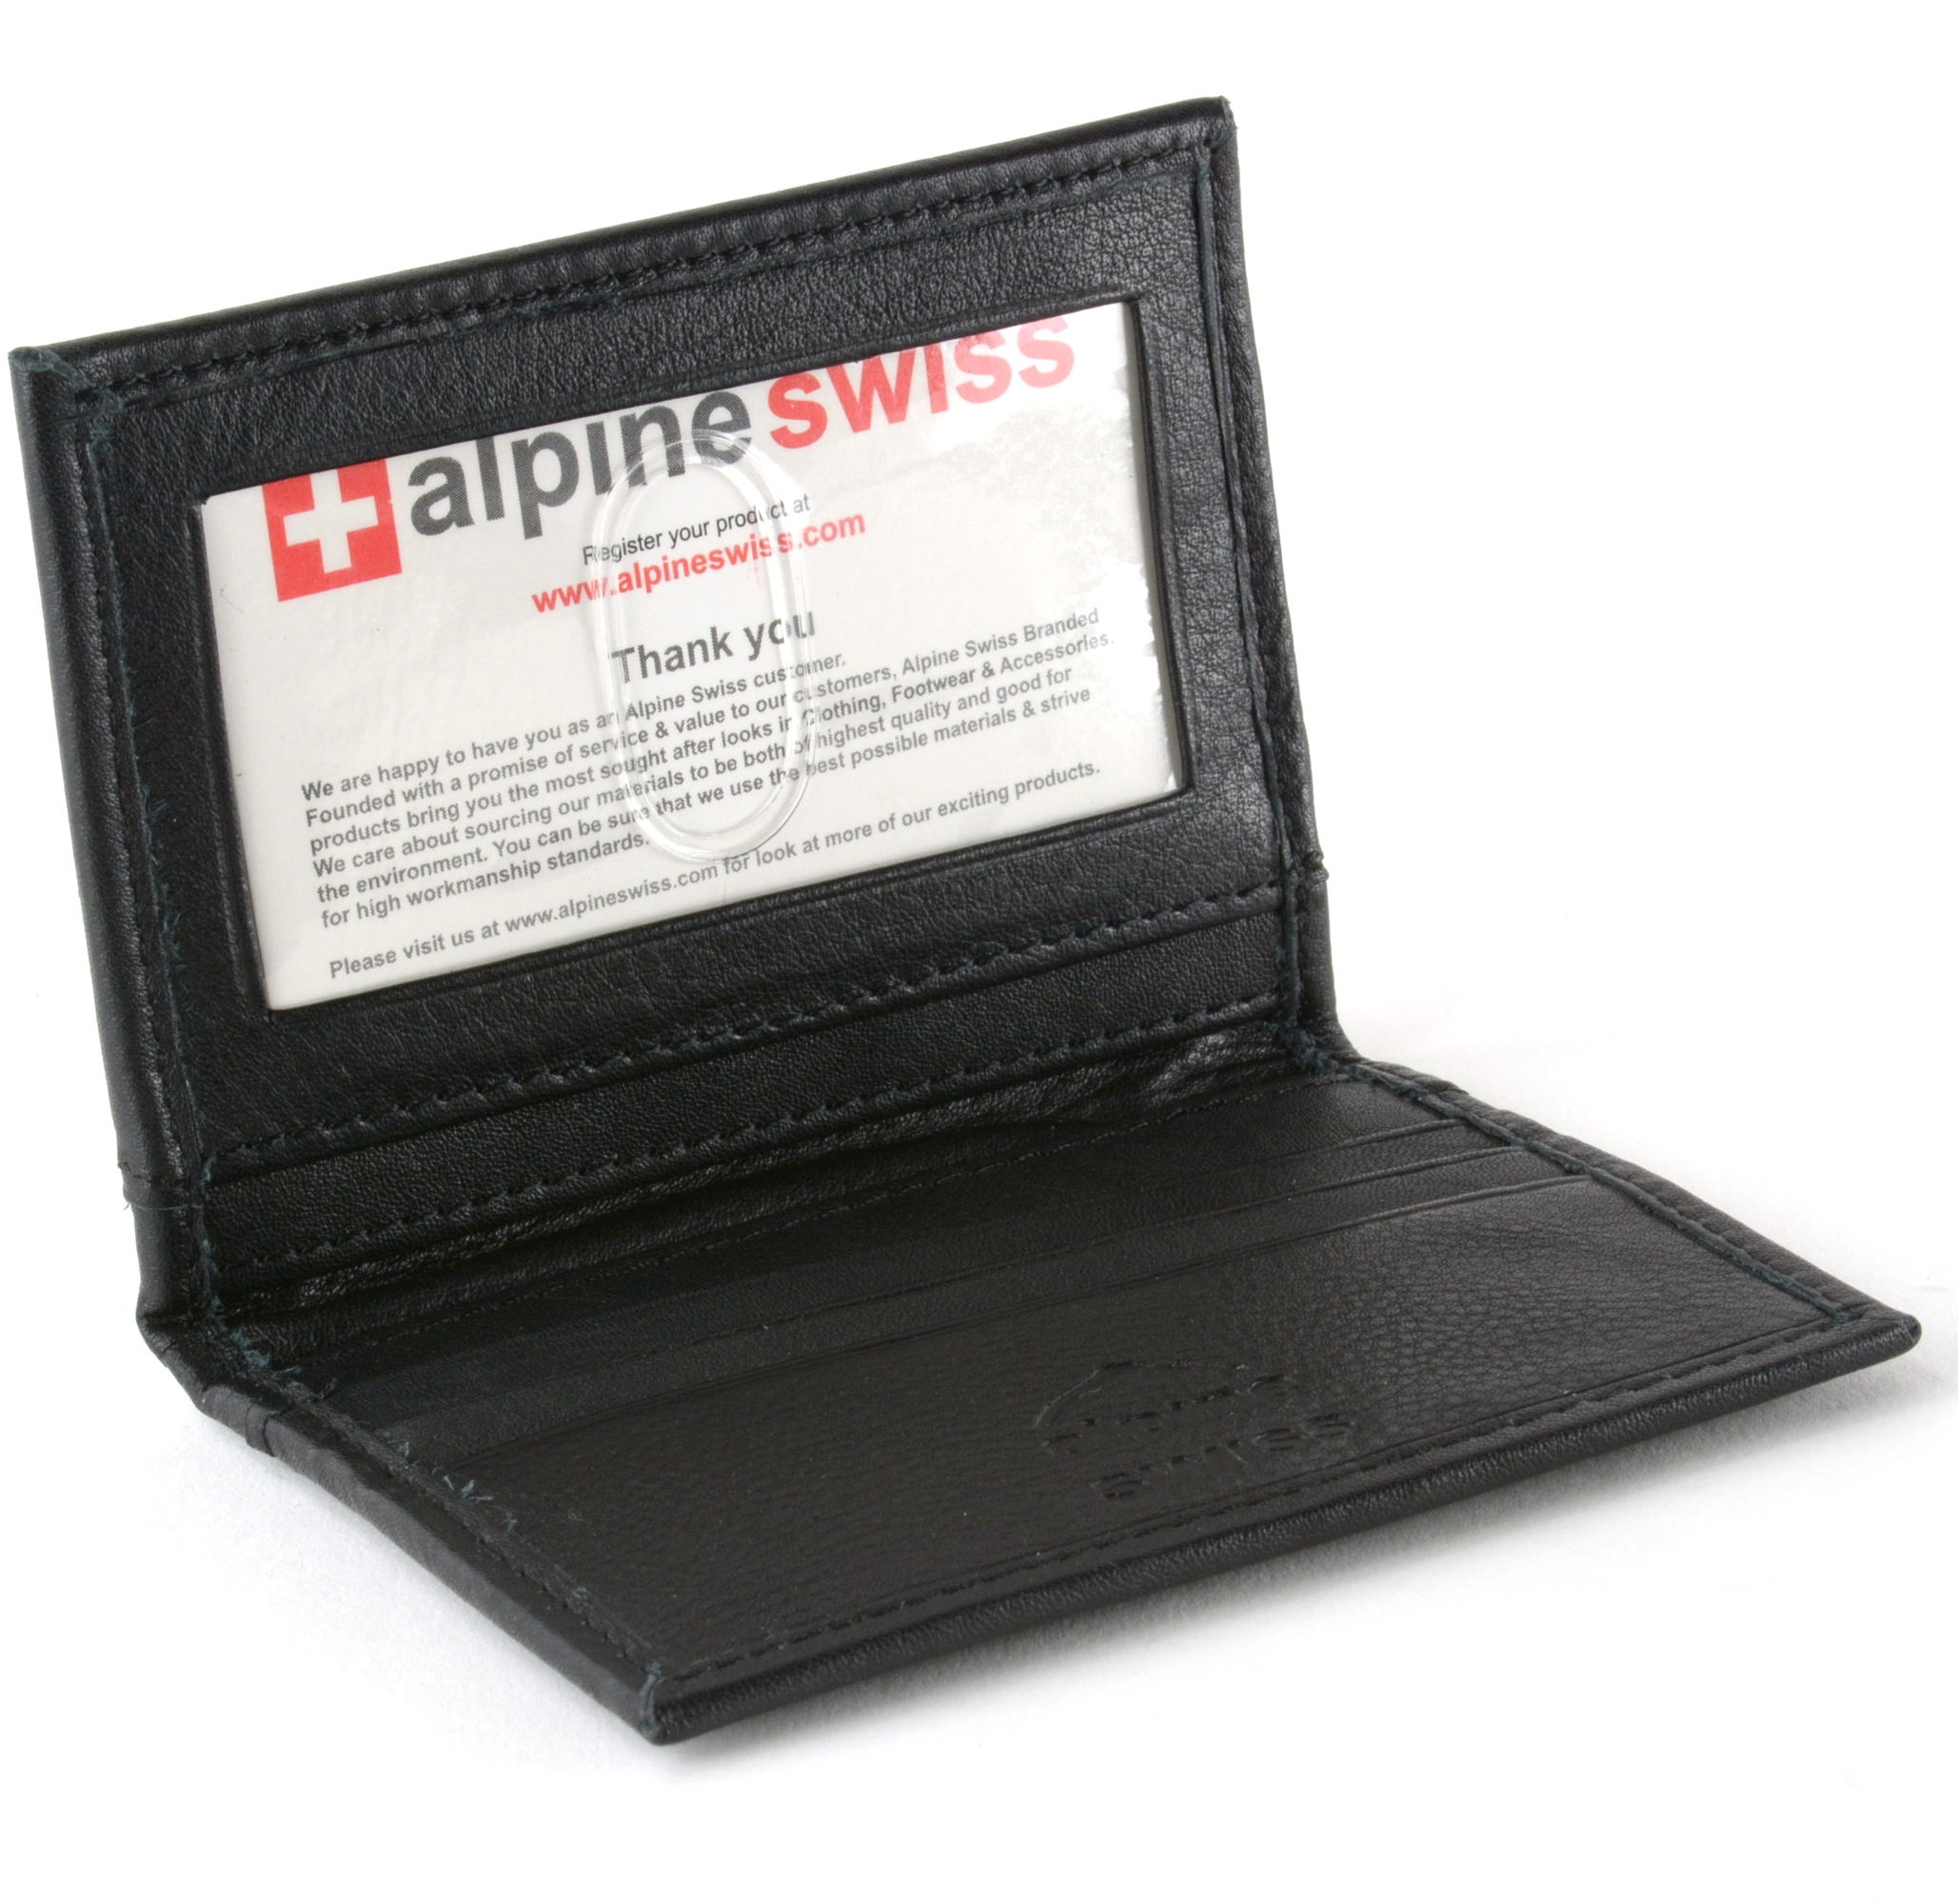 Alpine swiss thin front pocket wallet business card case 2 id window alpine swiss thin front pocket wallet business card case 2 id window 6 slot colourmoves